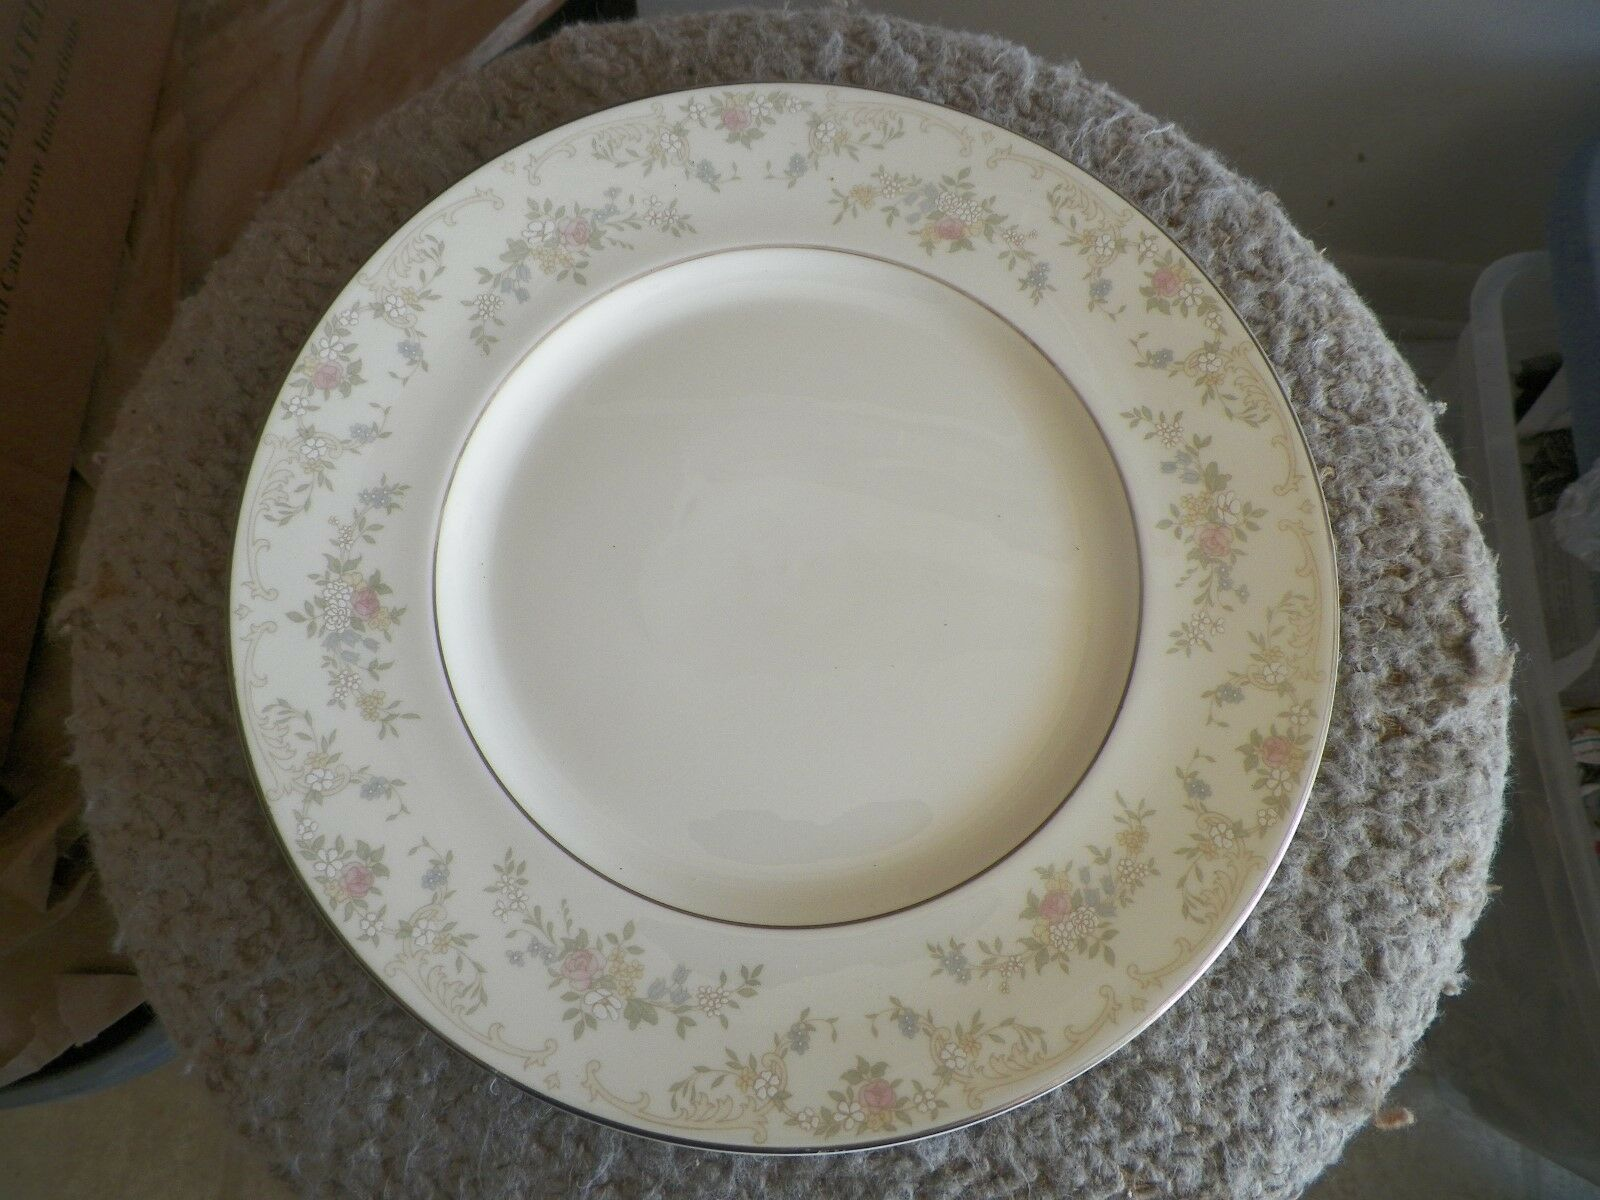 Royal Doulton Diana dinner plate 20 available